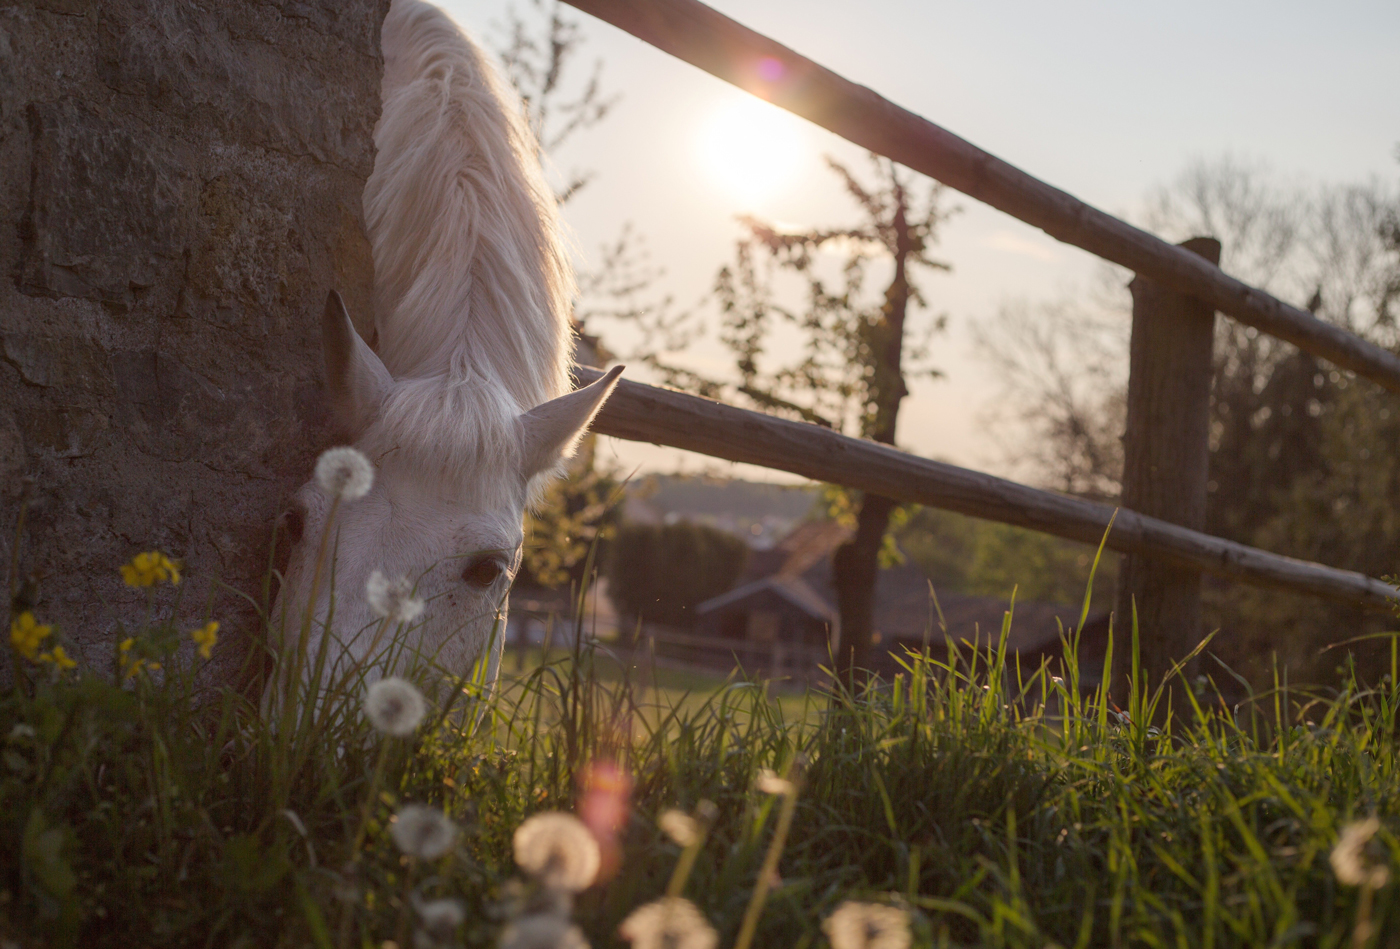 A horse leaning its neck around a wall and between a fence to graze some grass